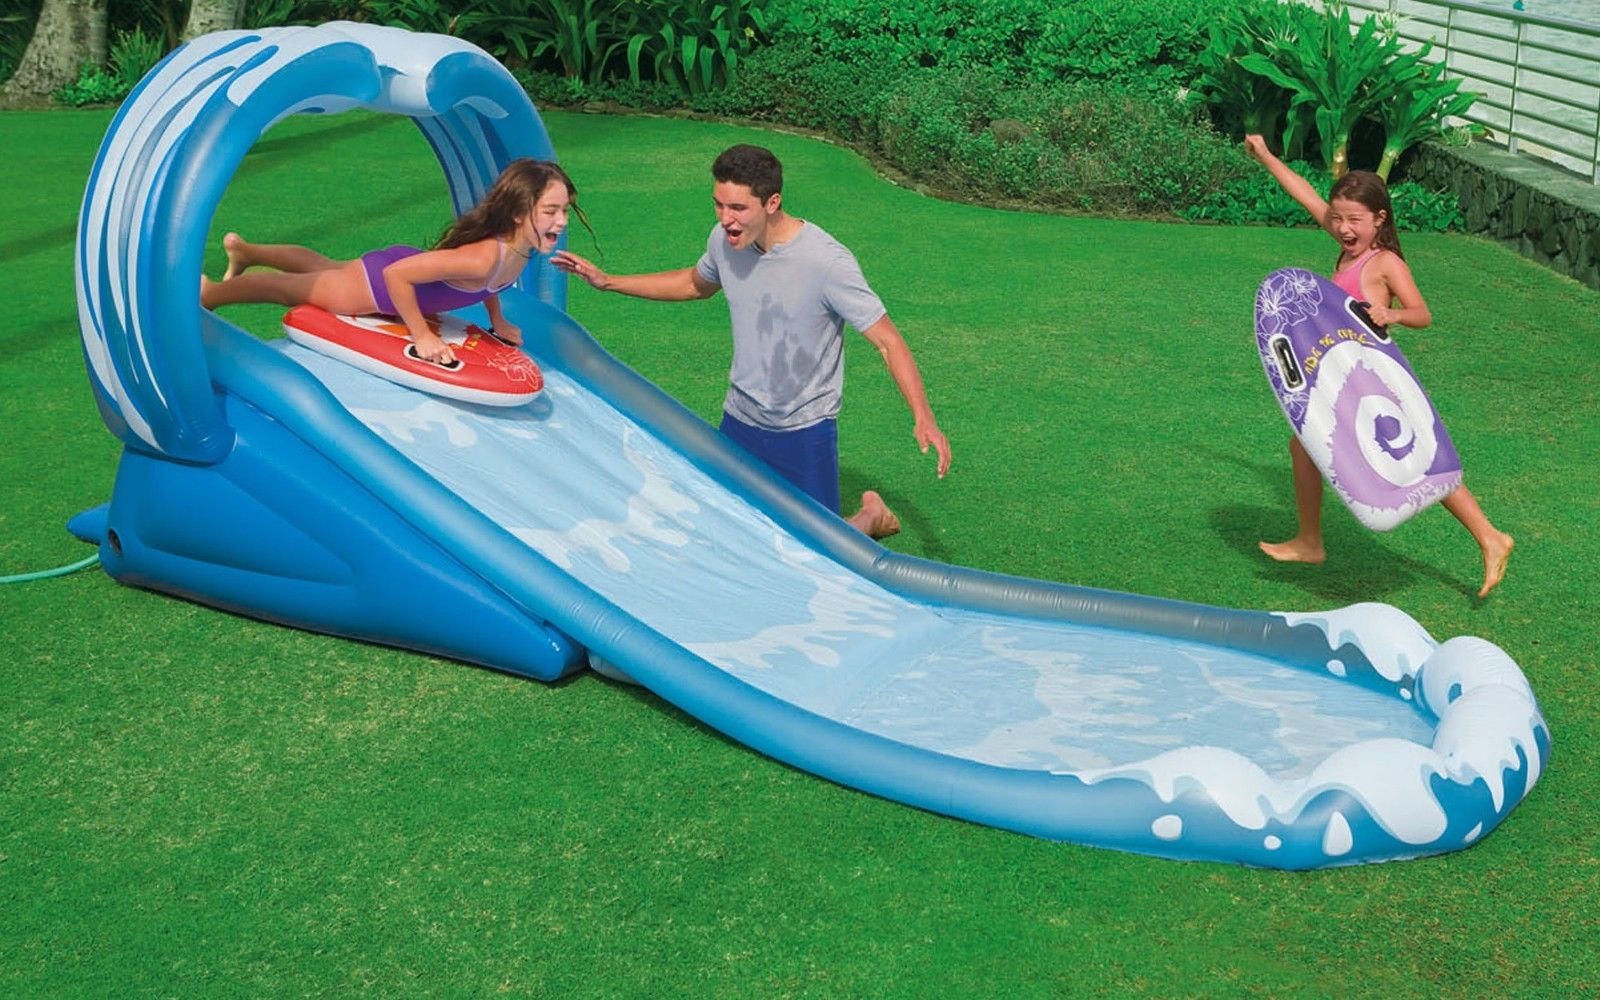 Inflatable Pool Slide Intex intex surf n slide inflatable kids water slide play center splash